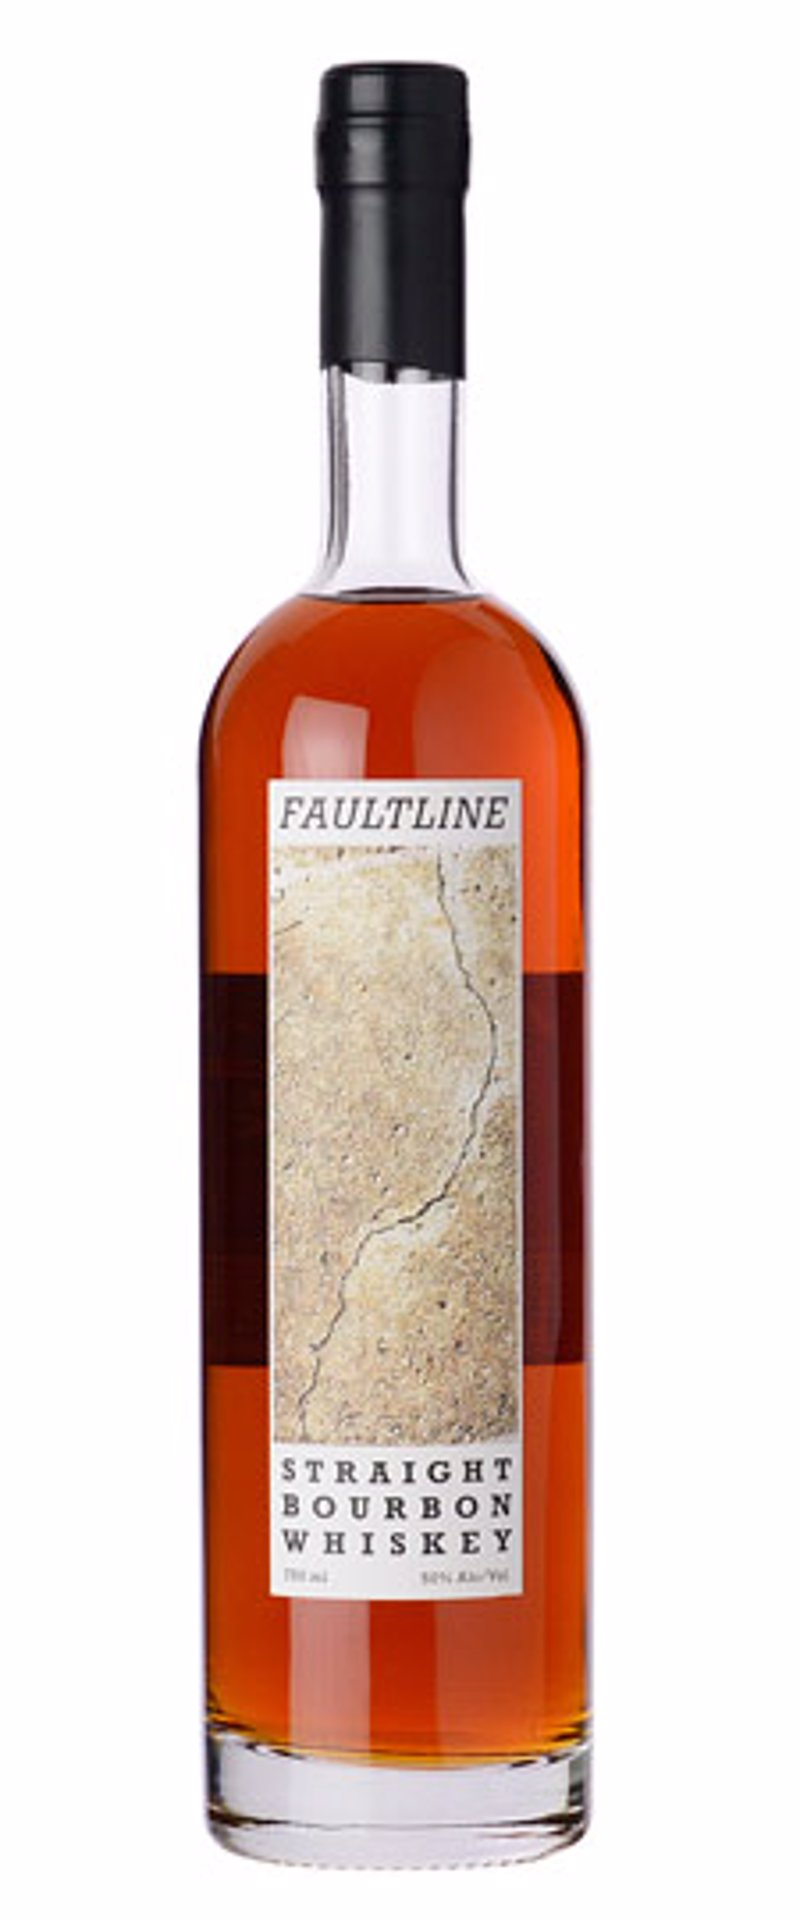 Faultline Straight Bourbon Whiskey - Find fantastic small and local producers of small batch liquor